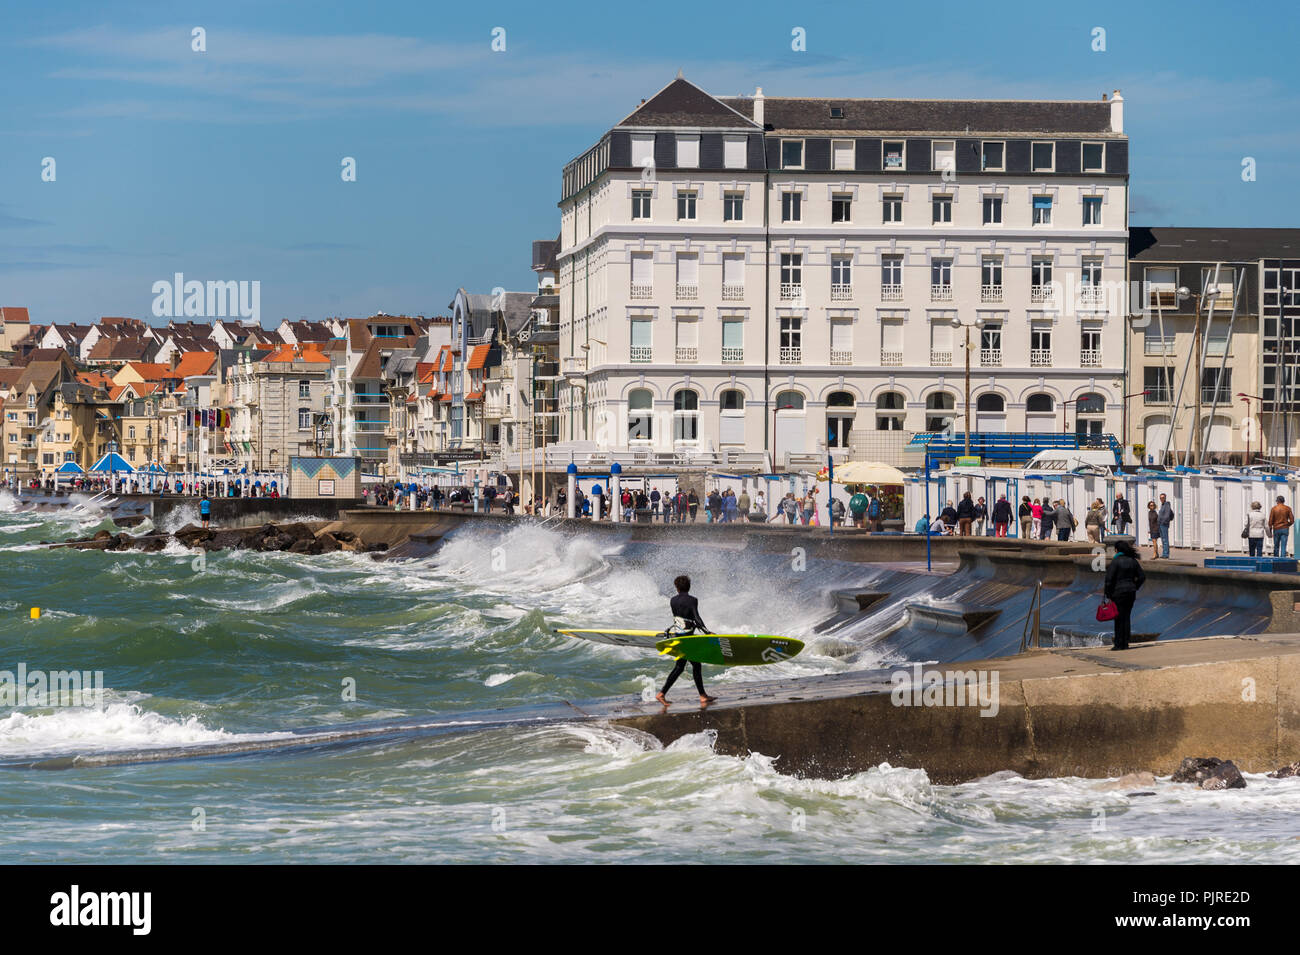 Wimereux, France - 16 June 2018: View of the sea front promenade as waves are hitting the seawall. - Stock Image